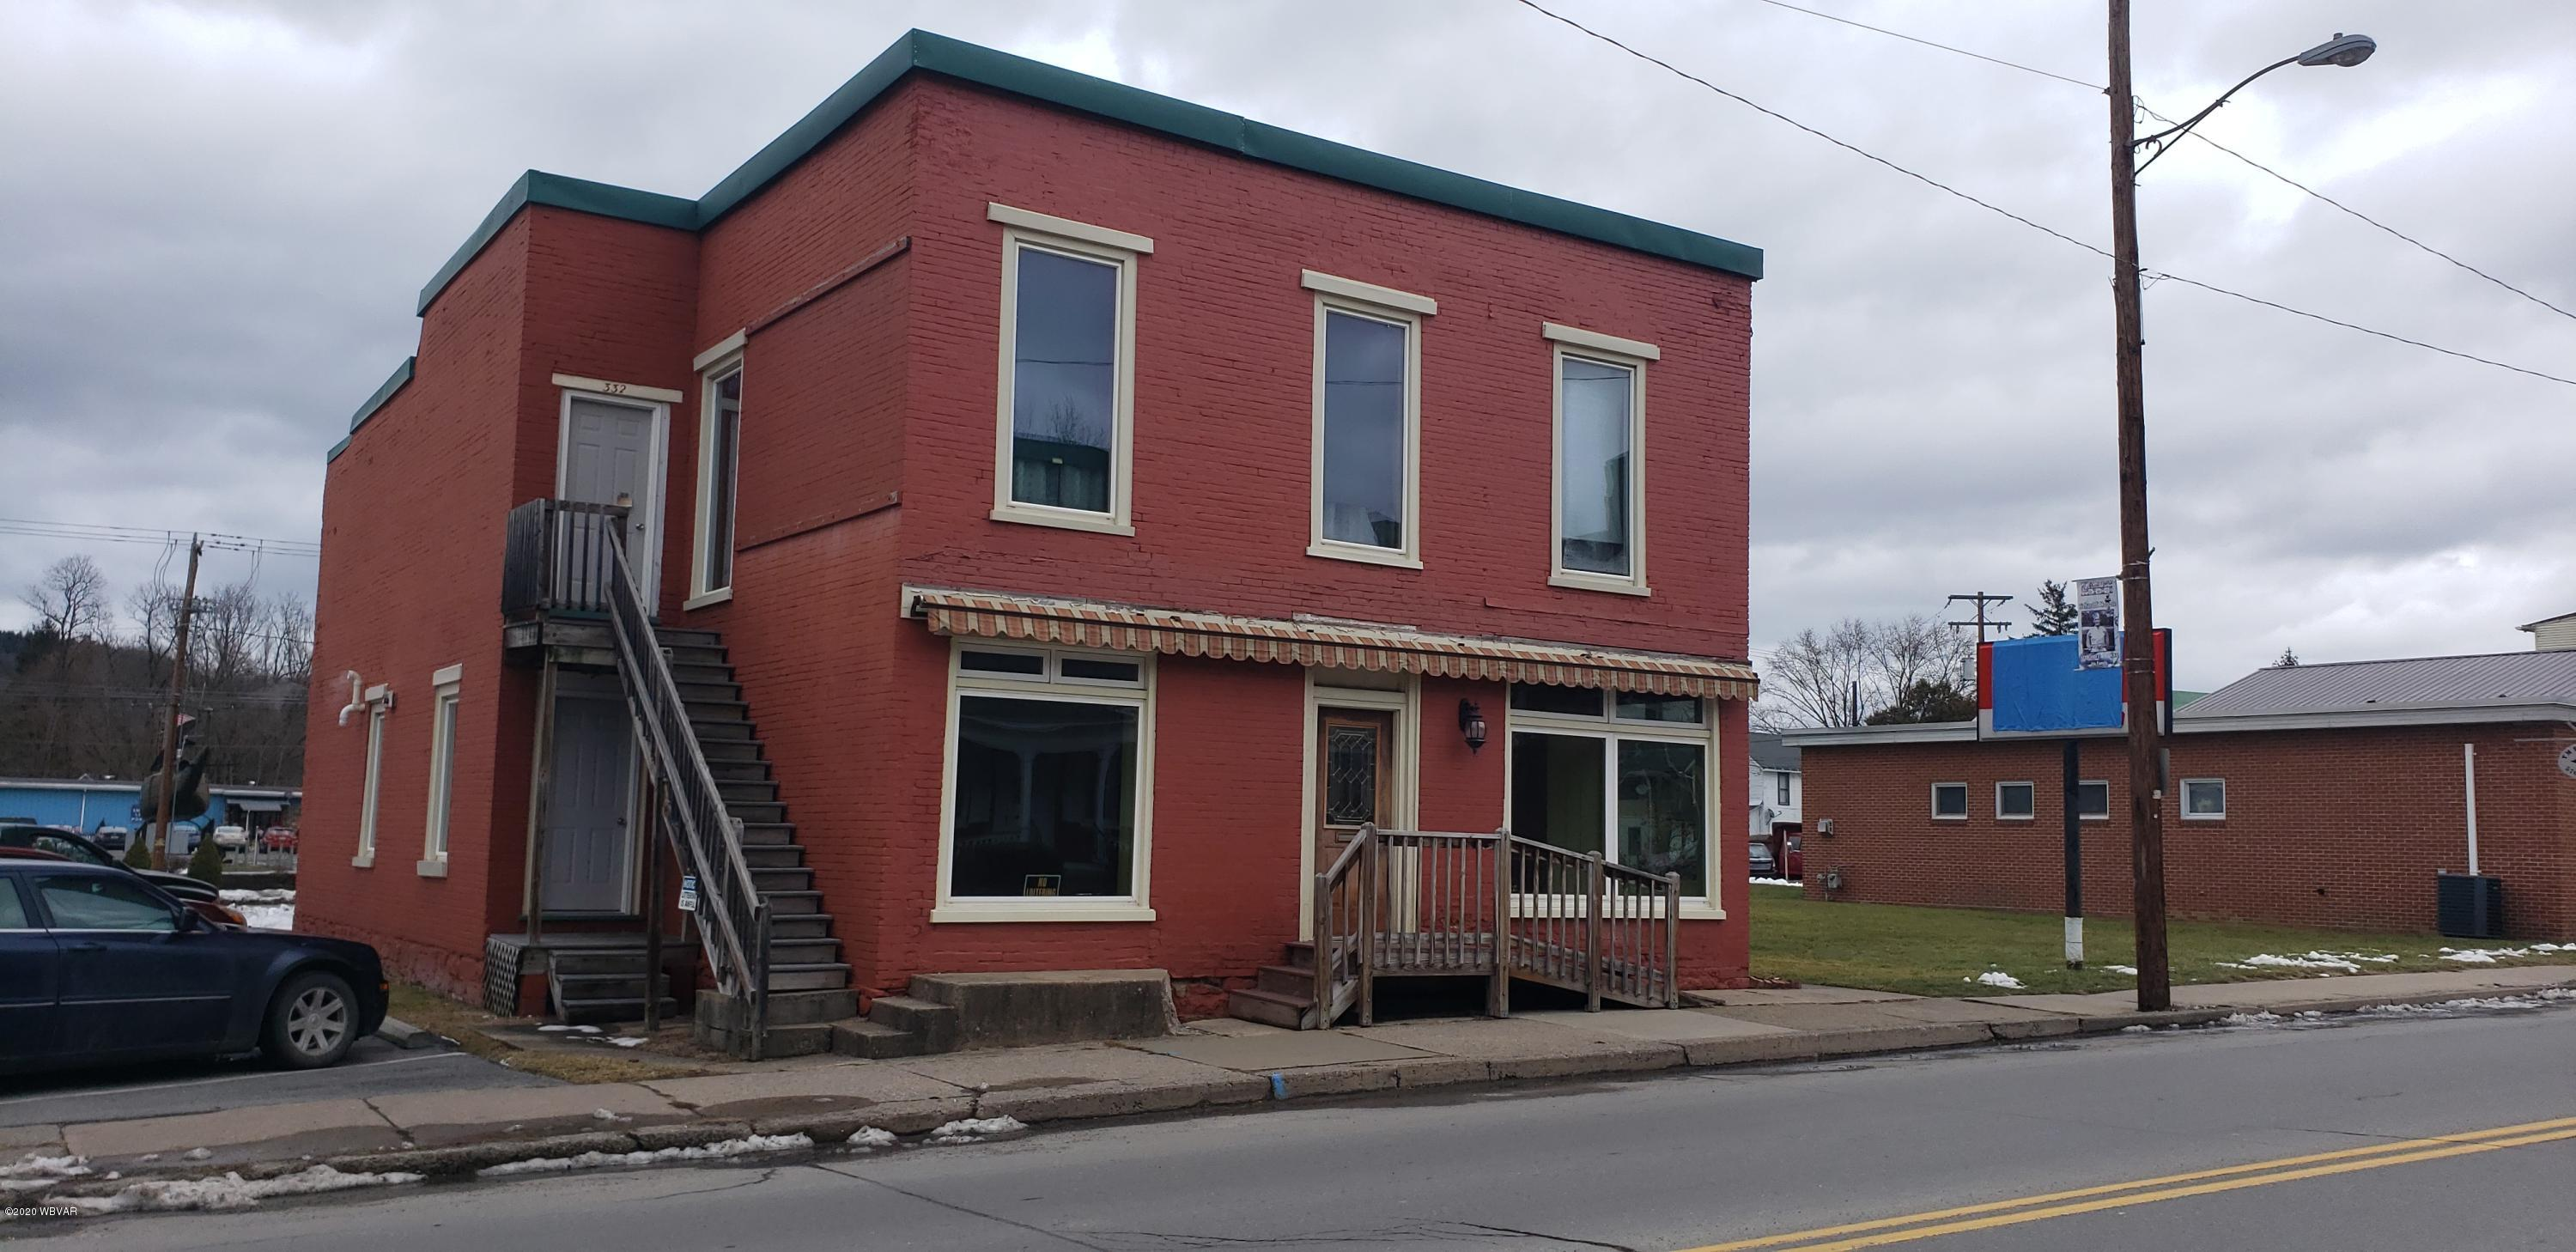 328 ALLEGHENY STREET, Jersey Shore, PA 17740, ,4 BathroomsBathrooms,Commercial sales,For sale,ALLEGHENY,WB-89451